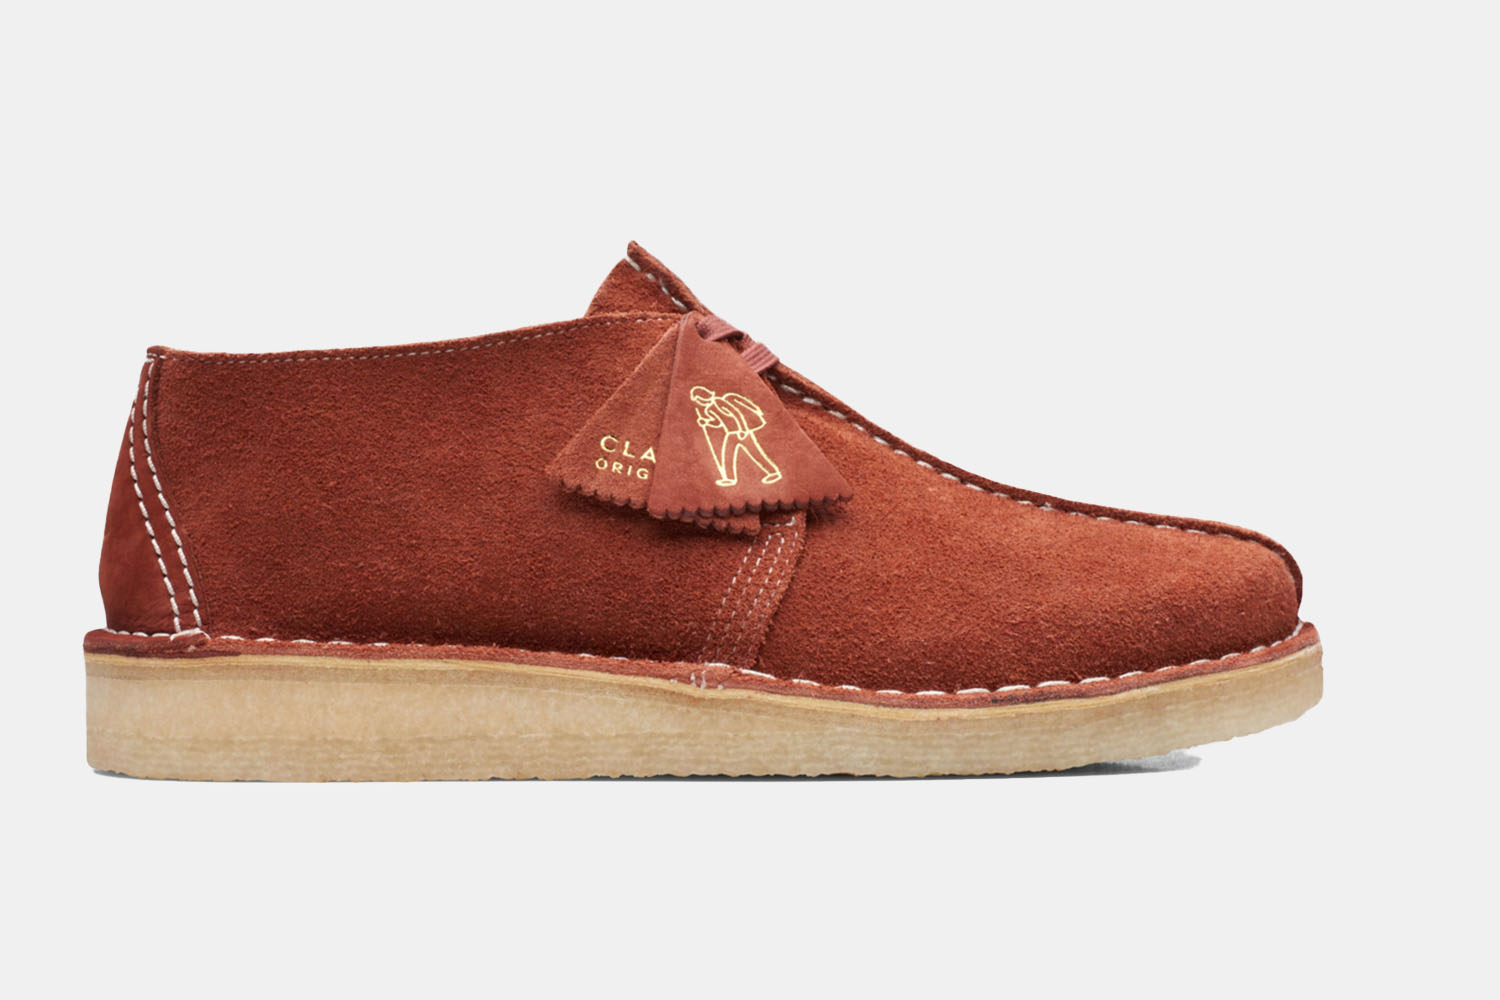 a fun-shaped suede colored shoe with a crepe sole.